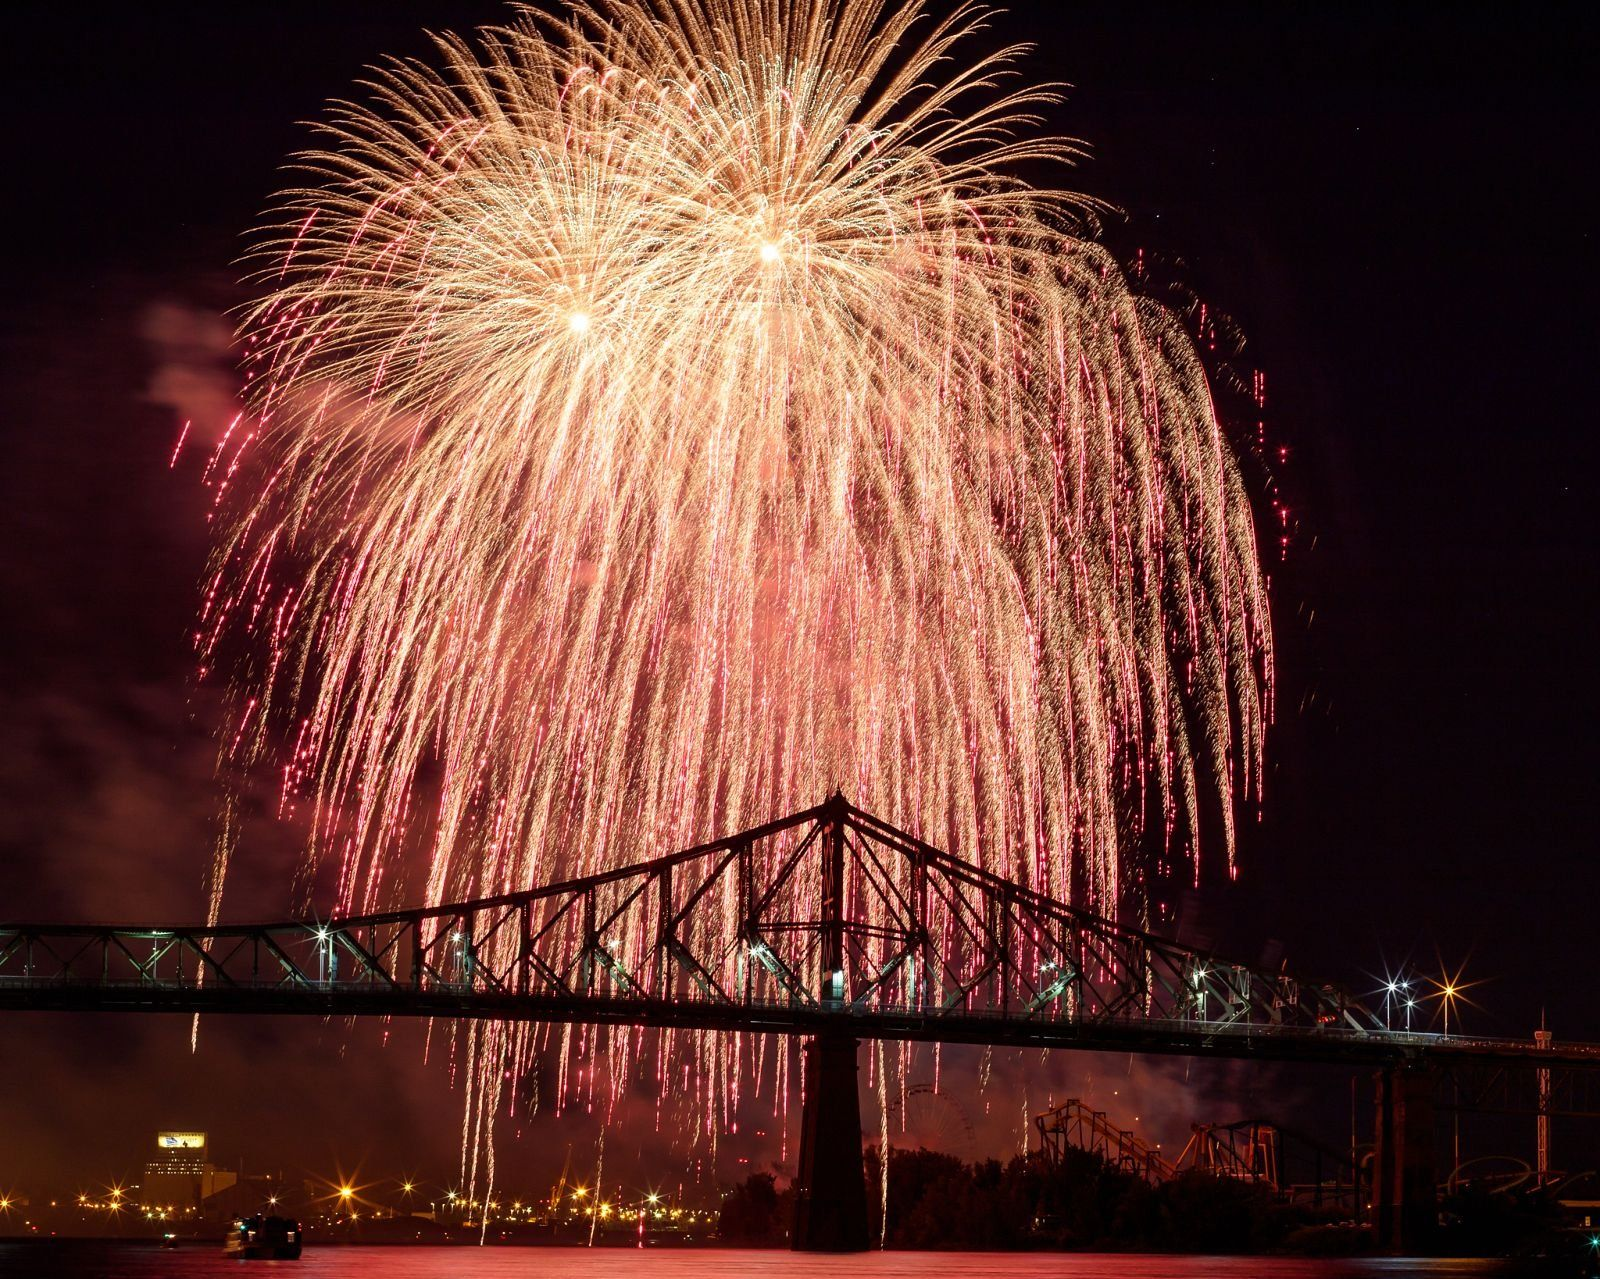 montreal_fireworks_competition_201726_1100.jpg